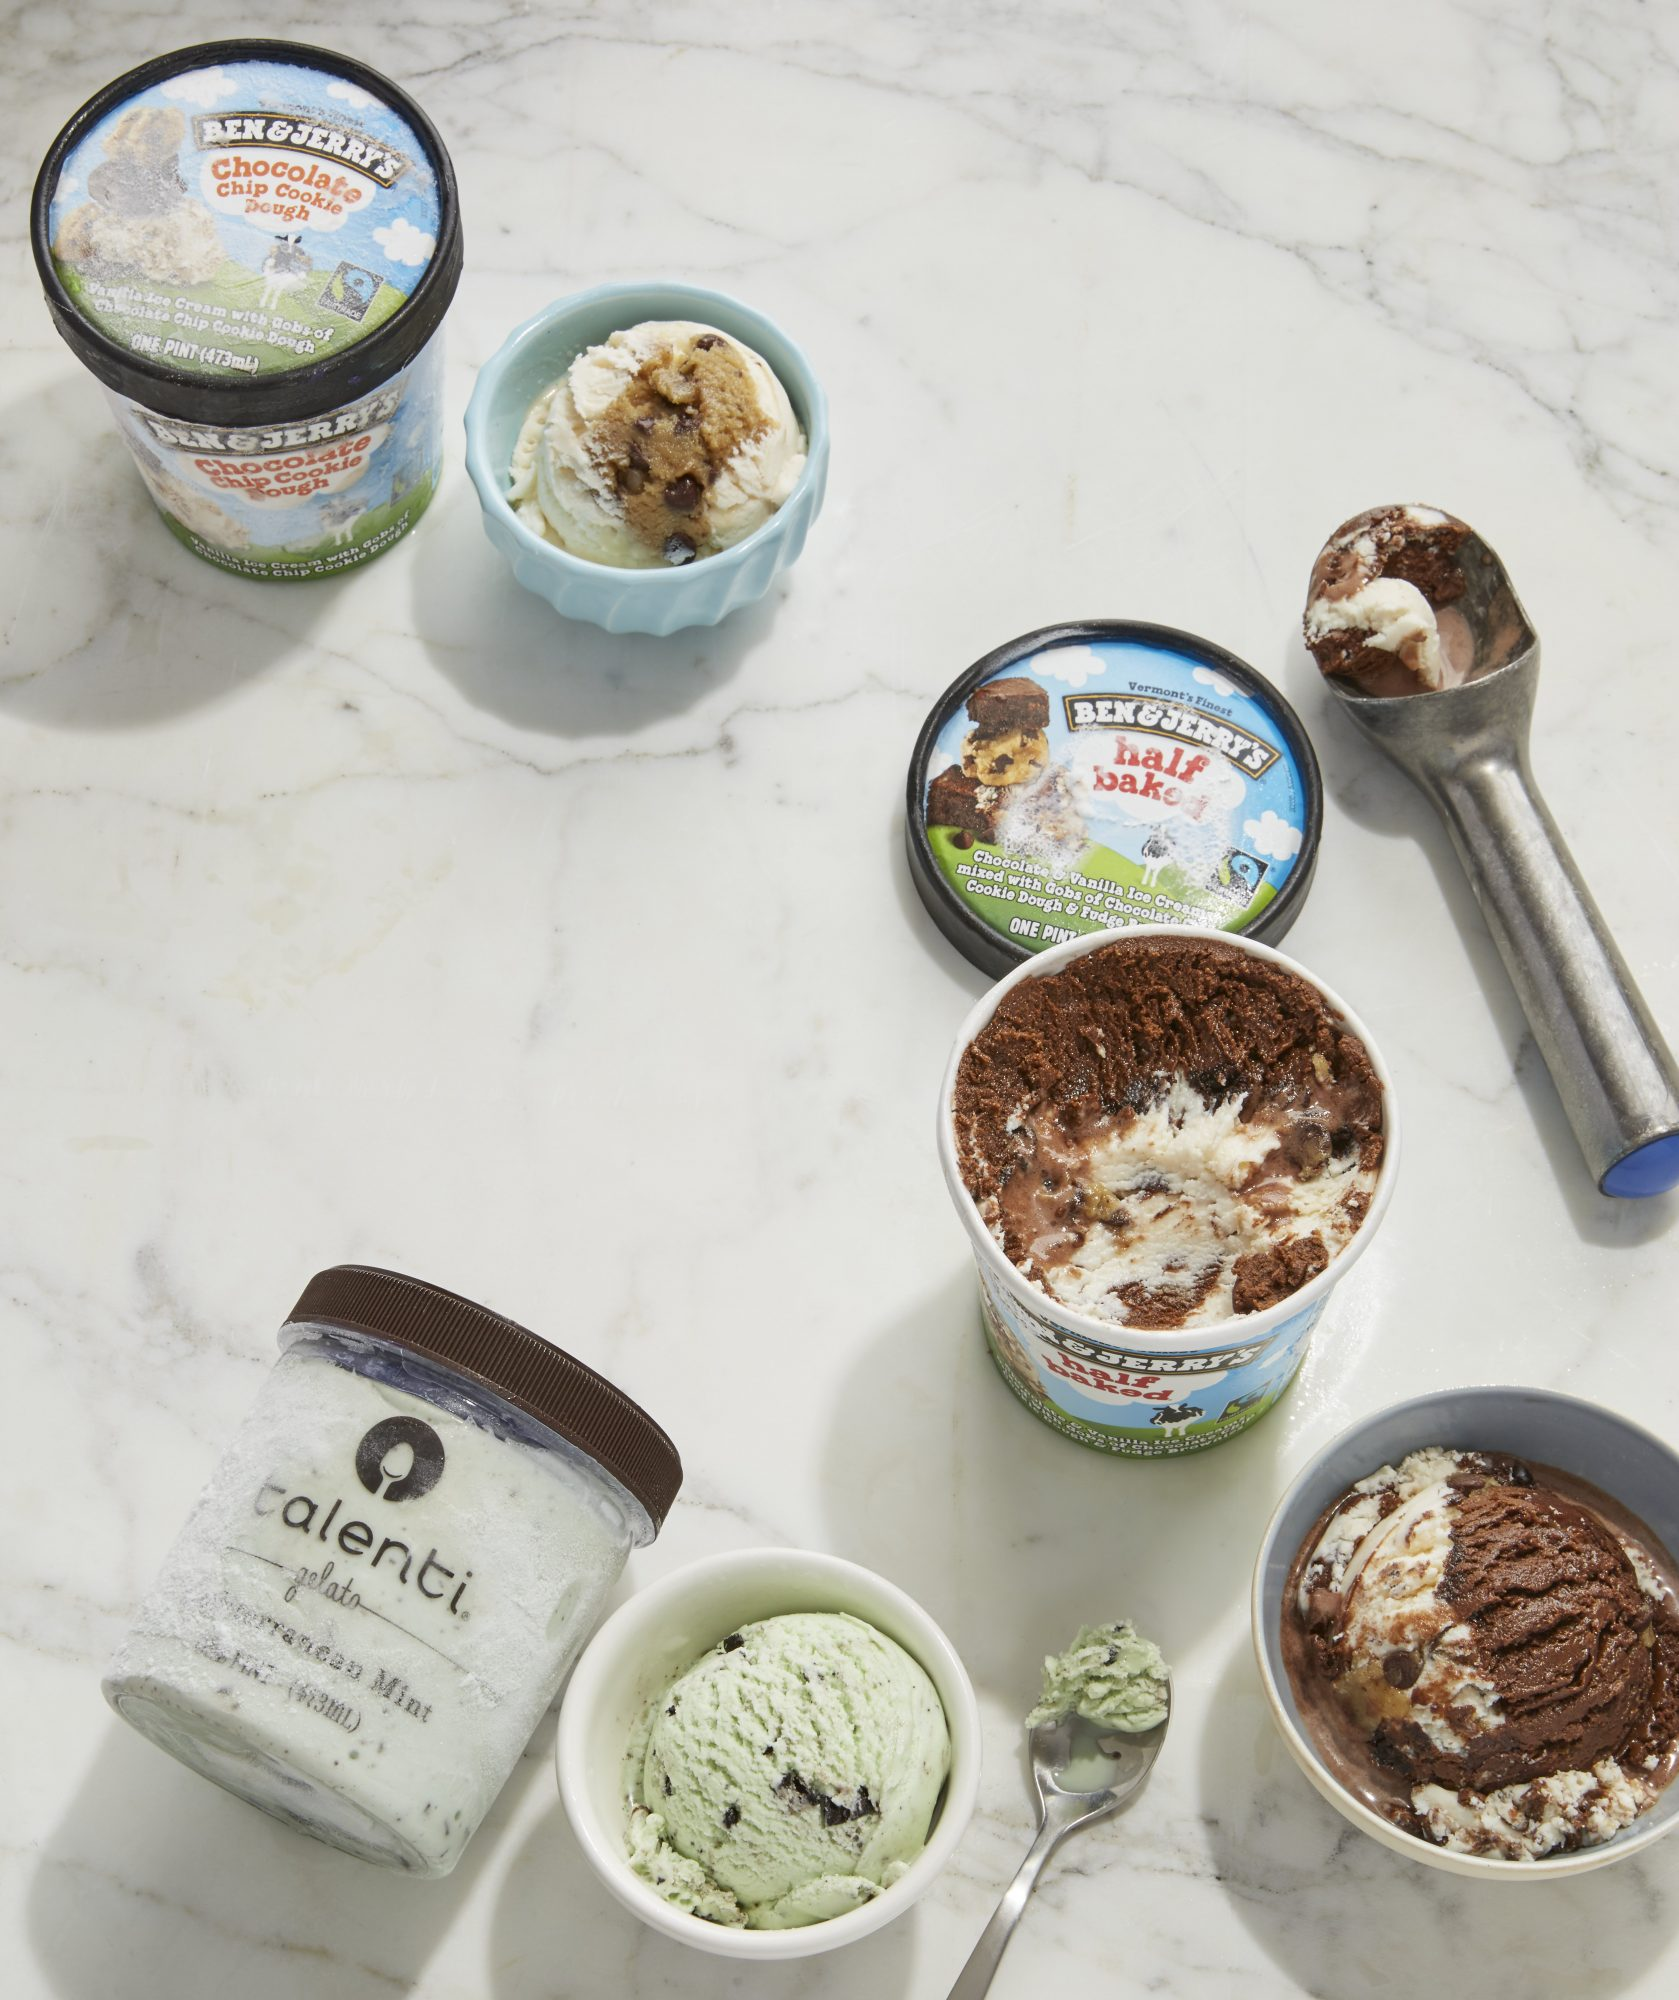 Whole Foods Just Announced a Major 3-Day Sale On Your Two Favorite Ice Cream Brands